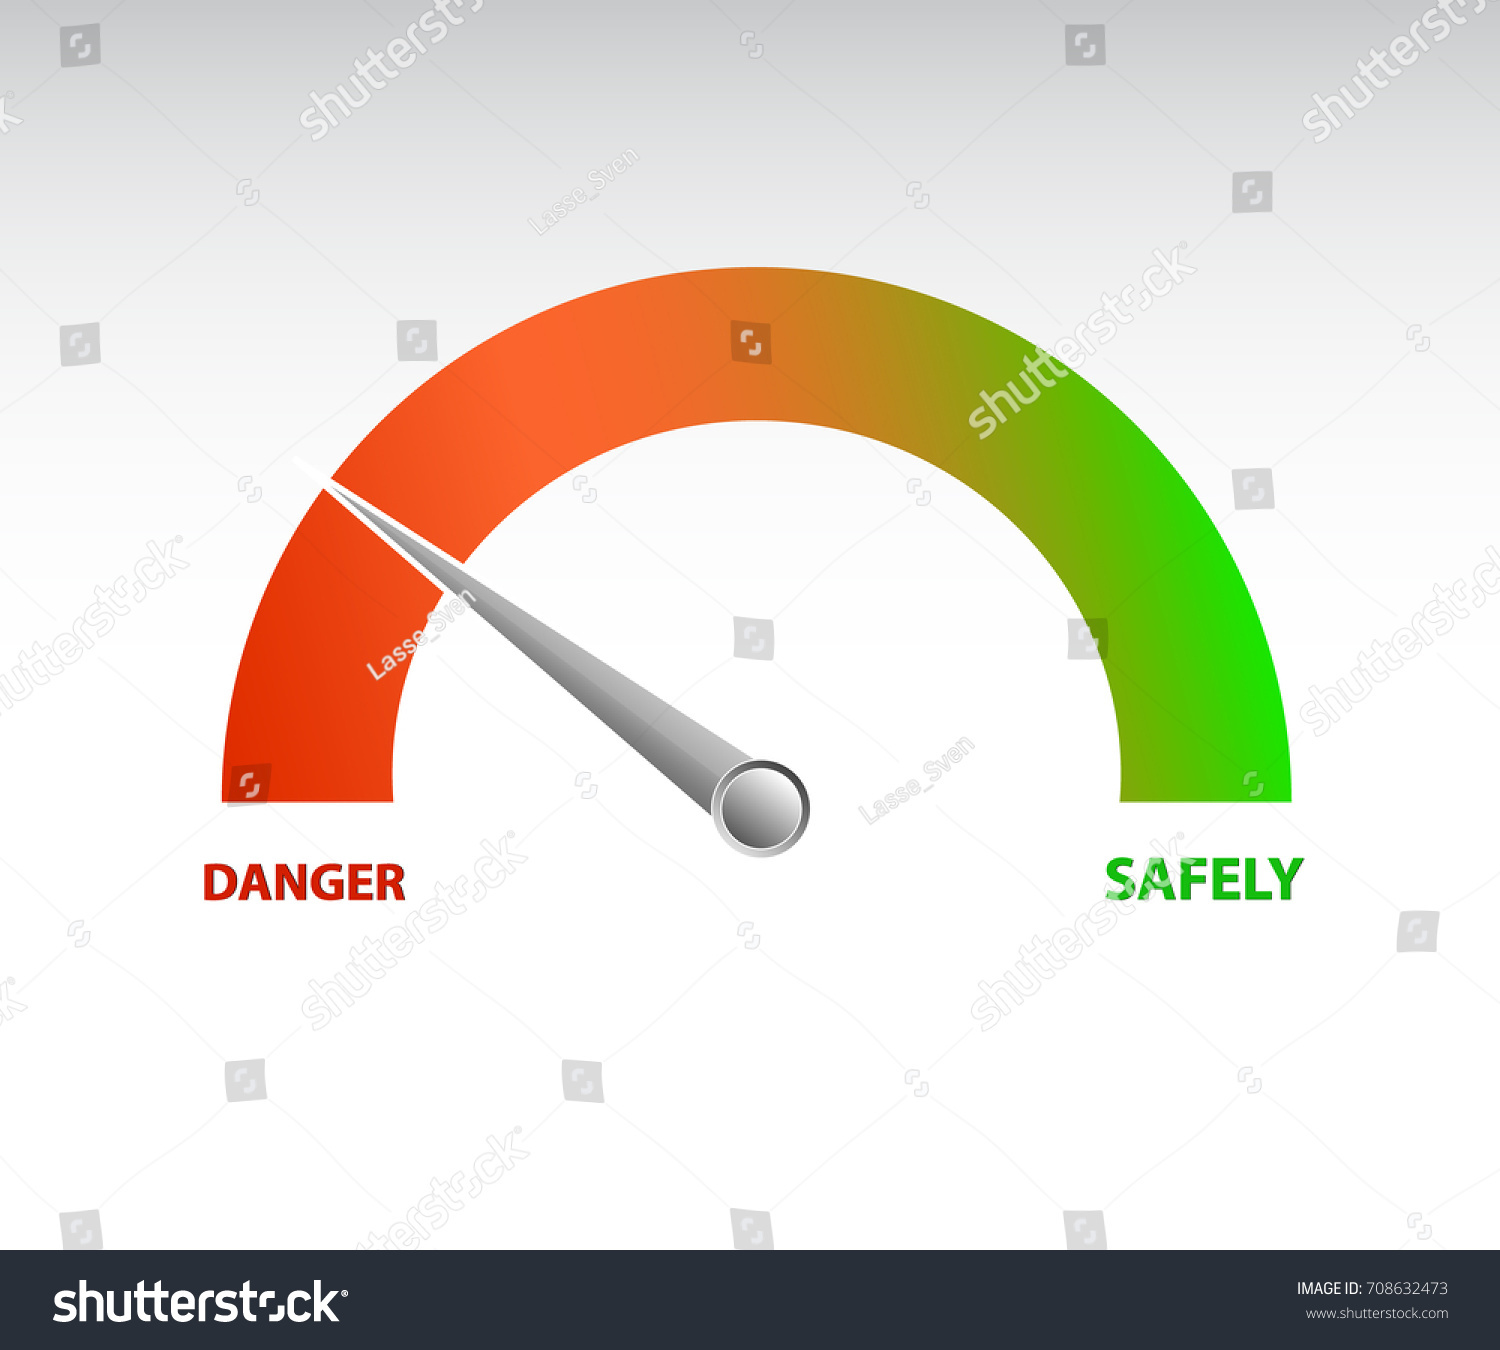 593 video stock royalty free a tema risk level